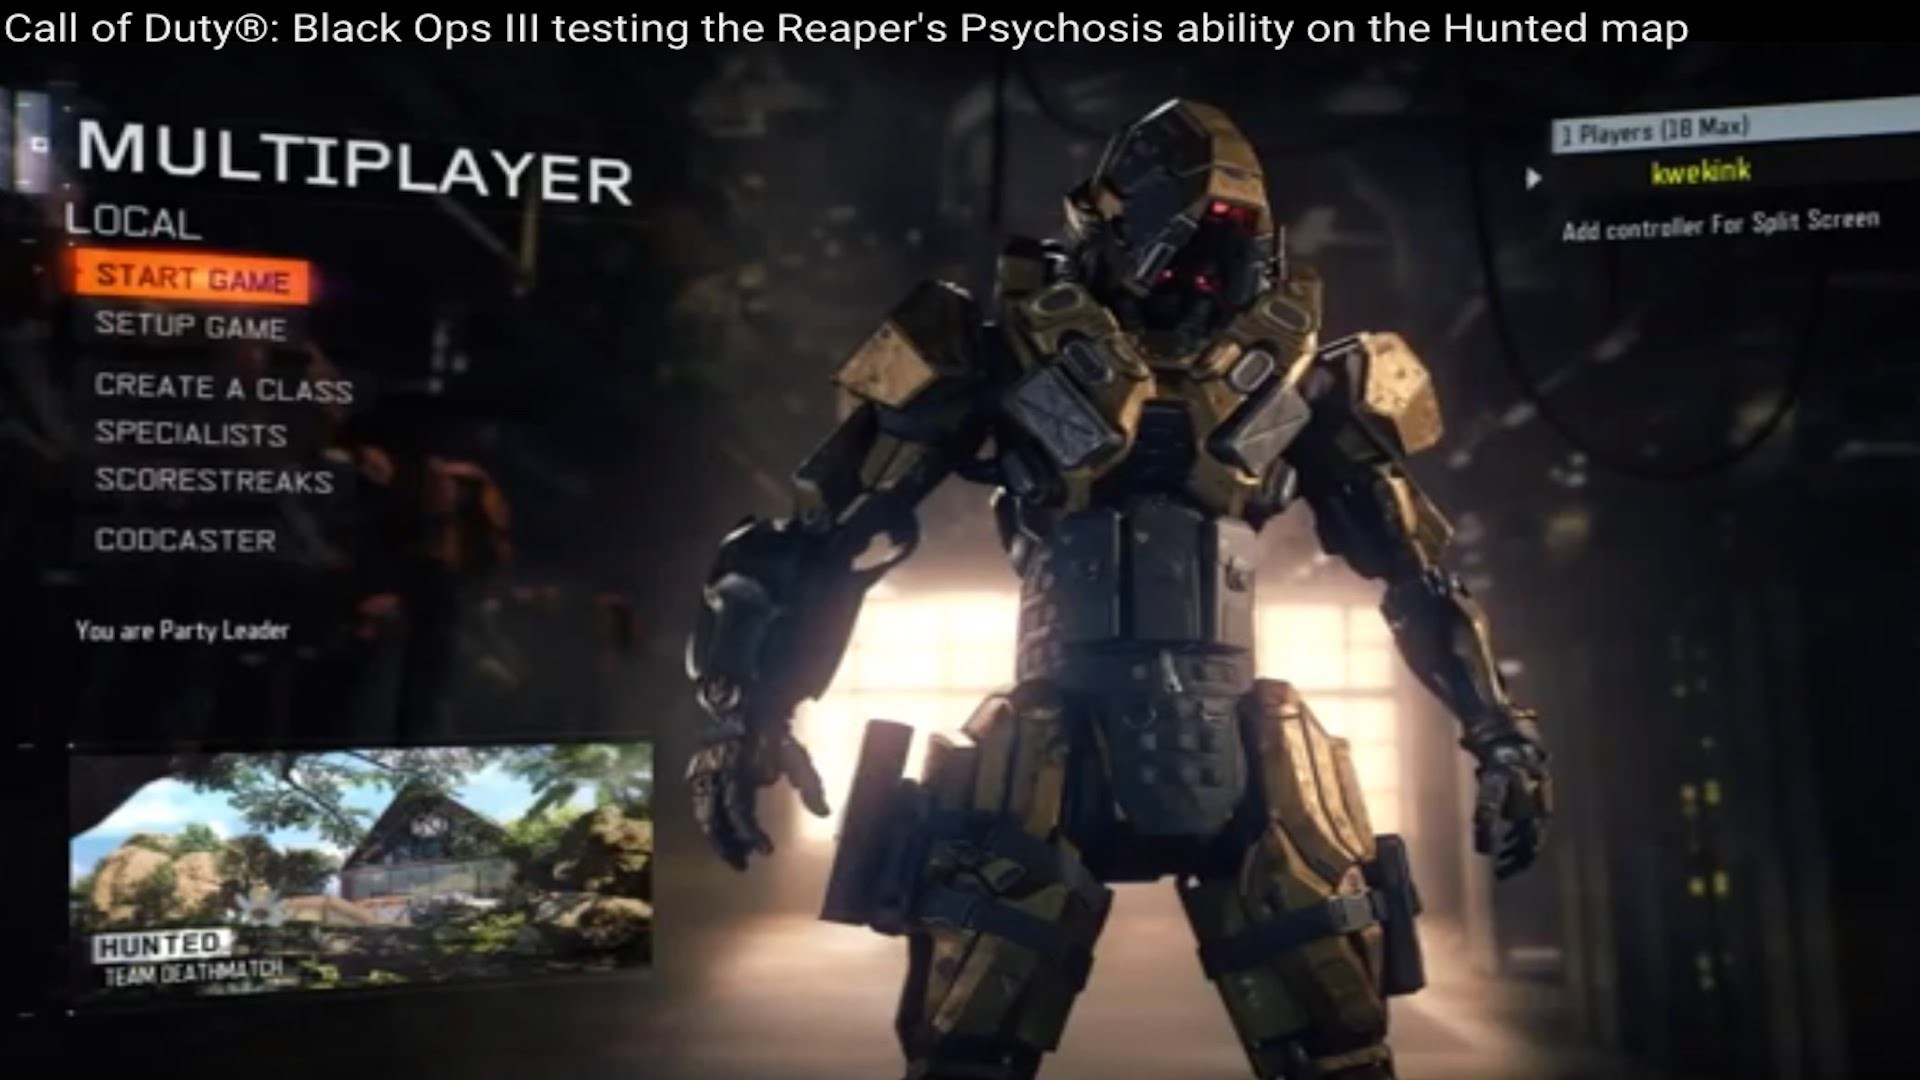 Res: 1920x1080, Call of Duty®: Black Ops III testing the Reaper's Psychosis ability on the  Hunted map